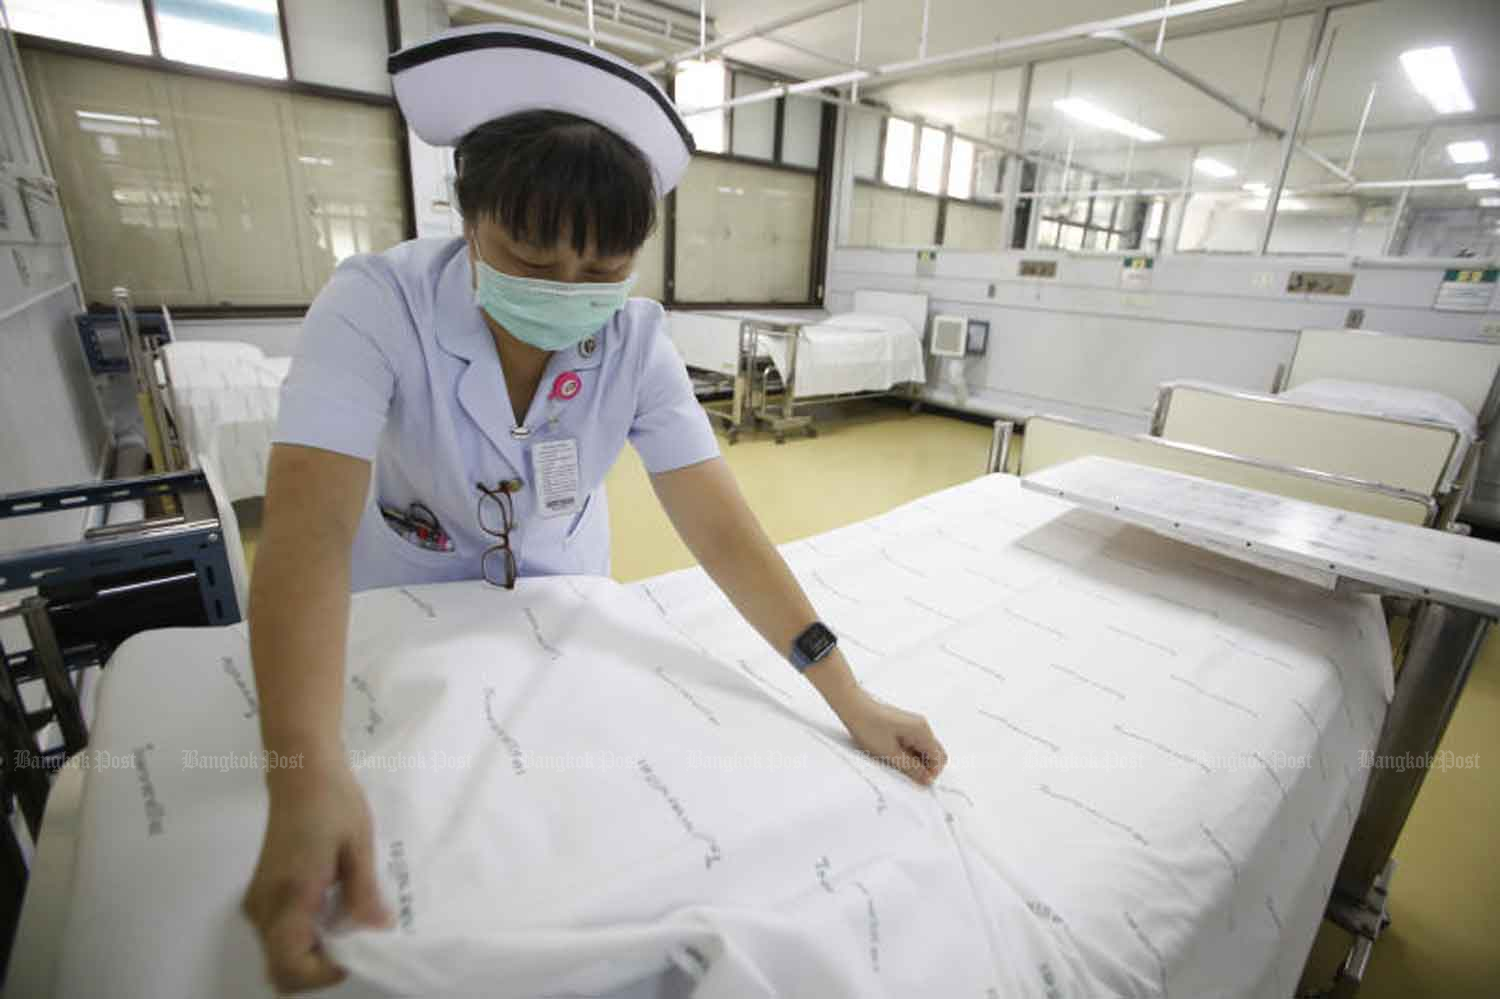 A nurse straightens sheets on beds to accommodate Covid-19 patients at Rajavithi Hospital. The hospital, one of the country's largest and best equipped, has been chosen to set standards for state-run hospitals in the transfer and screening of Covid-19 patients. (Photo: Pornprom Satrabhaya)